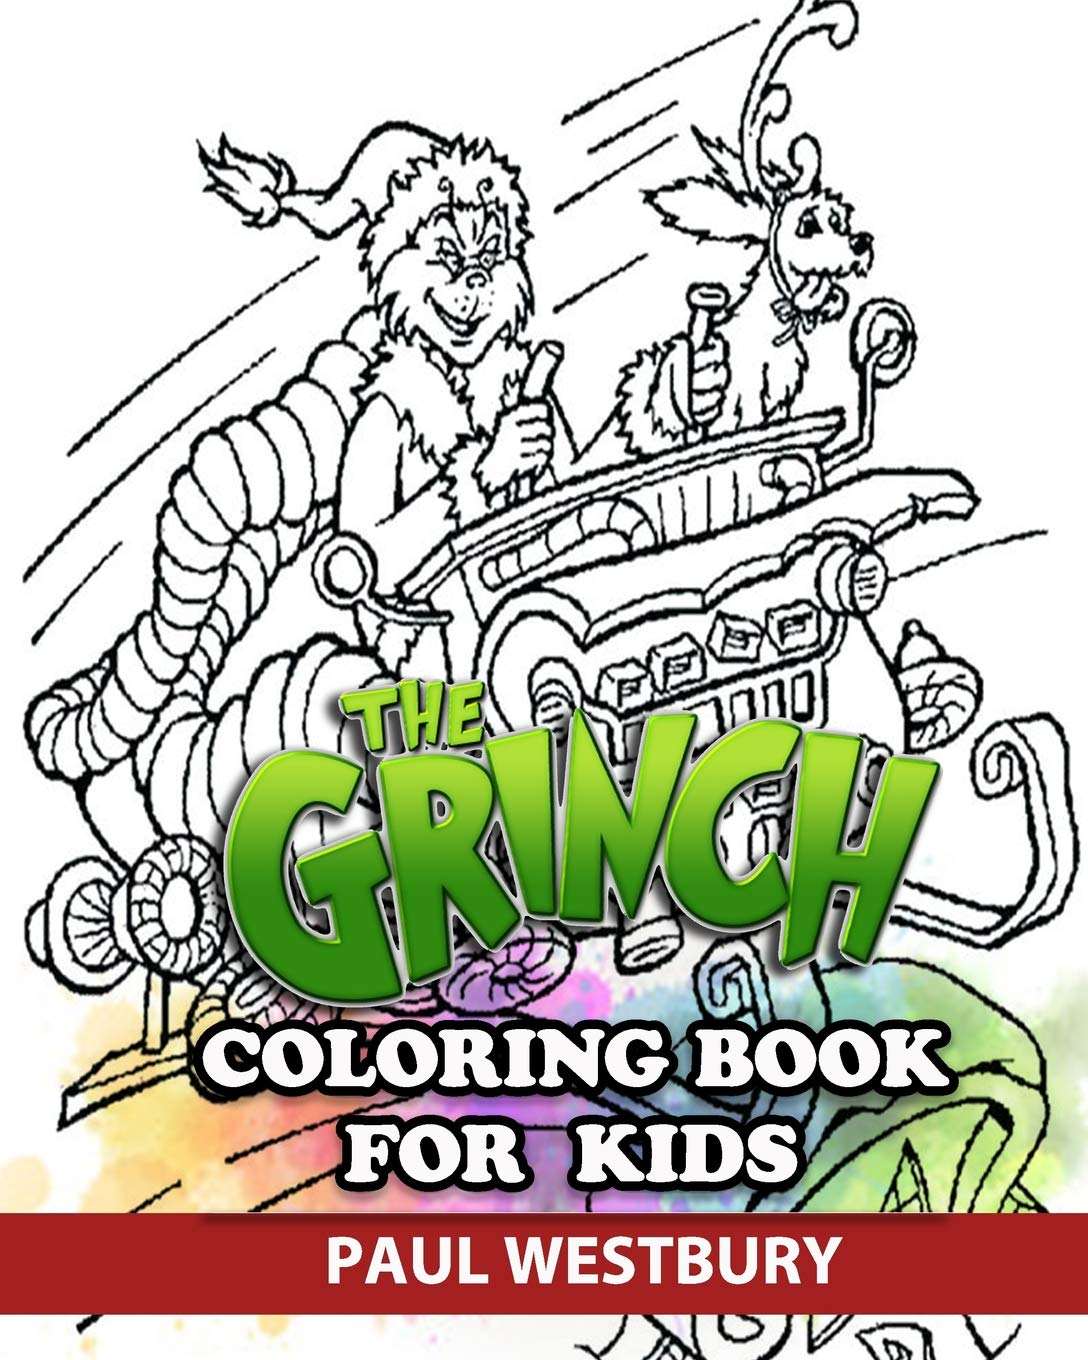 Buy The Grinch Coloring Book For Kids Coloring All Your Favorite The Grinch Characters Book Online At Low Prices In India The Grinch Coloring Book For Kids Coloring All Your Favorite